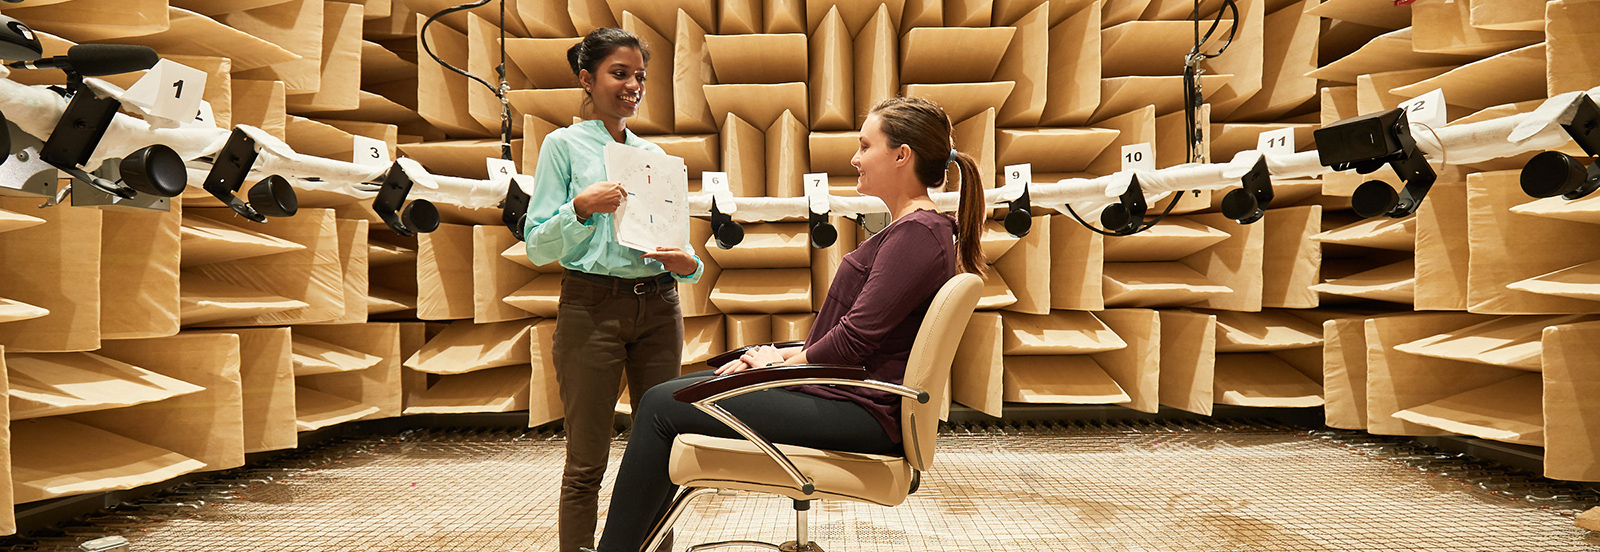 students in anechoic chamber